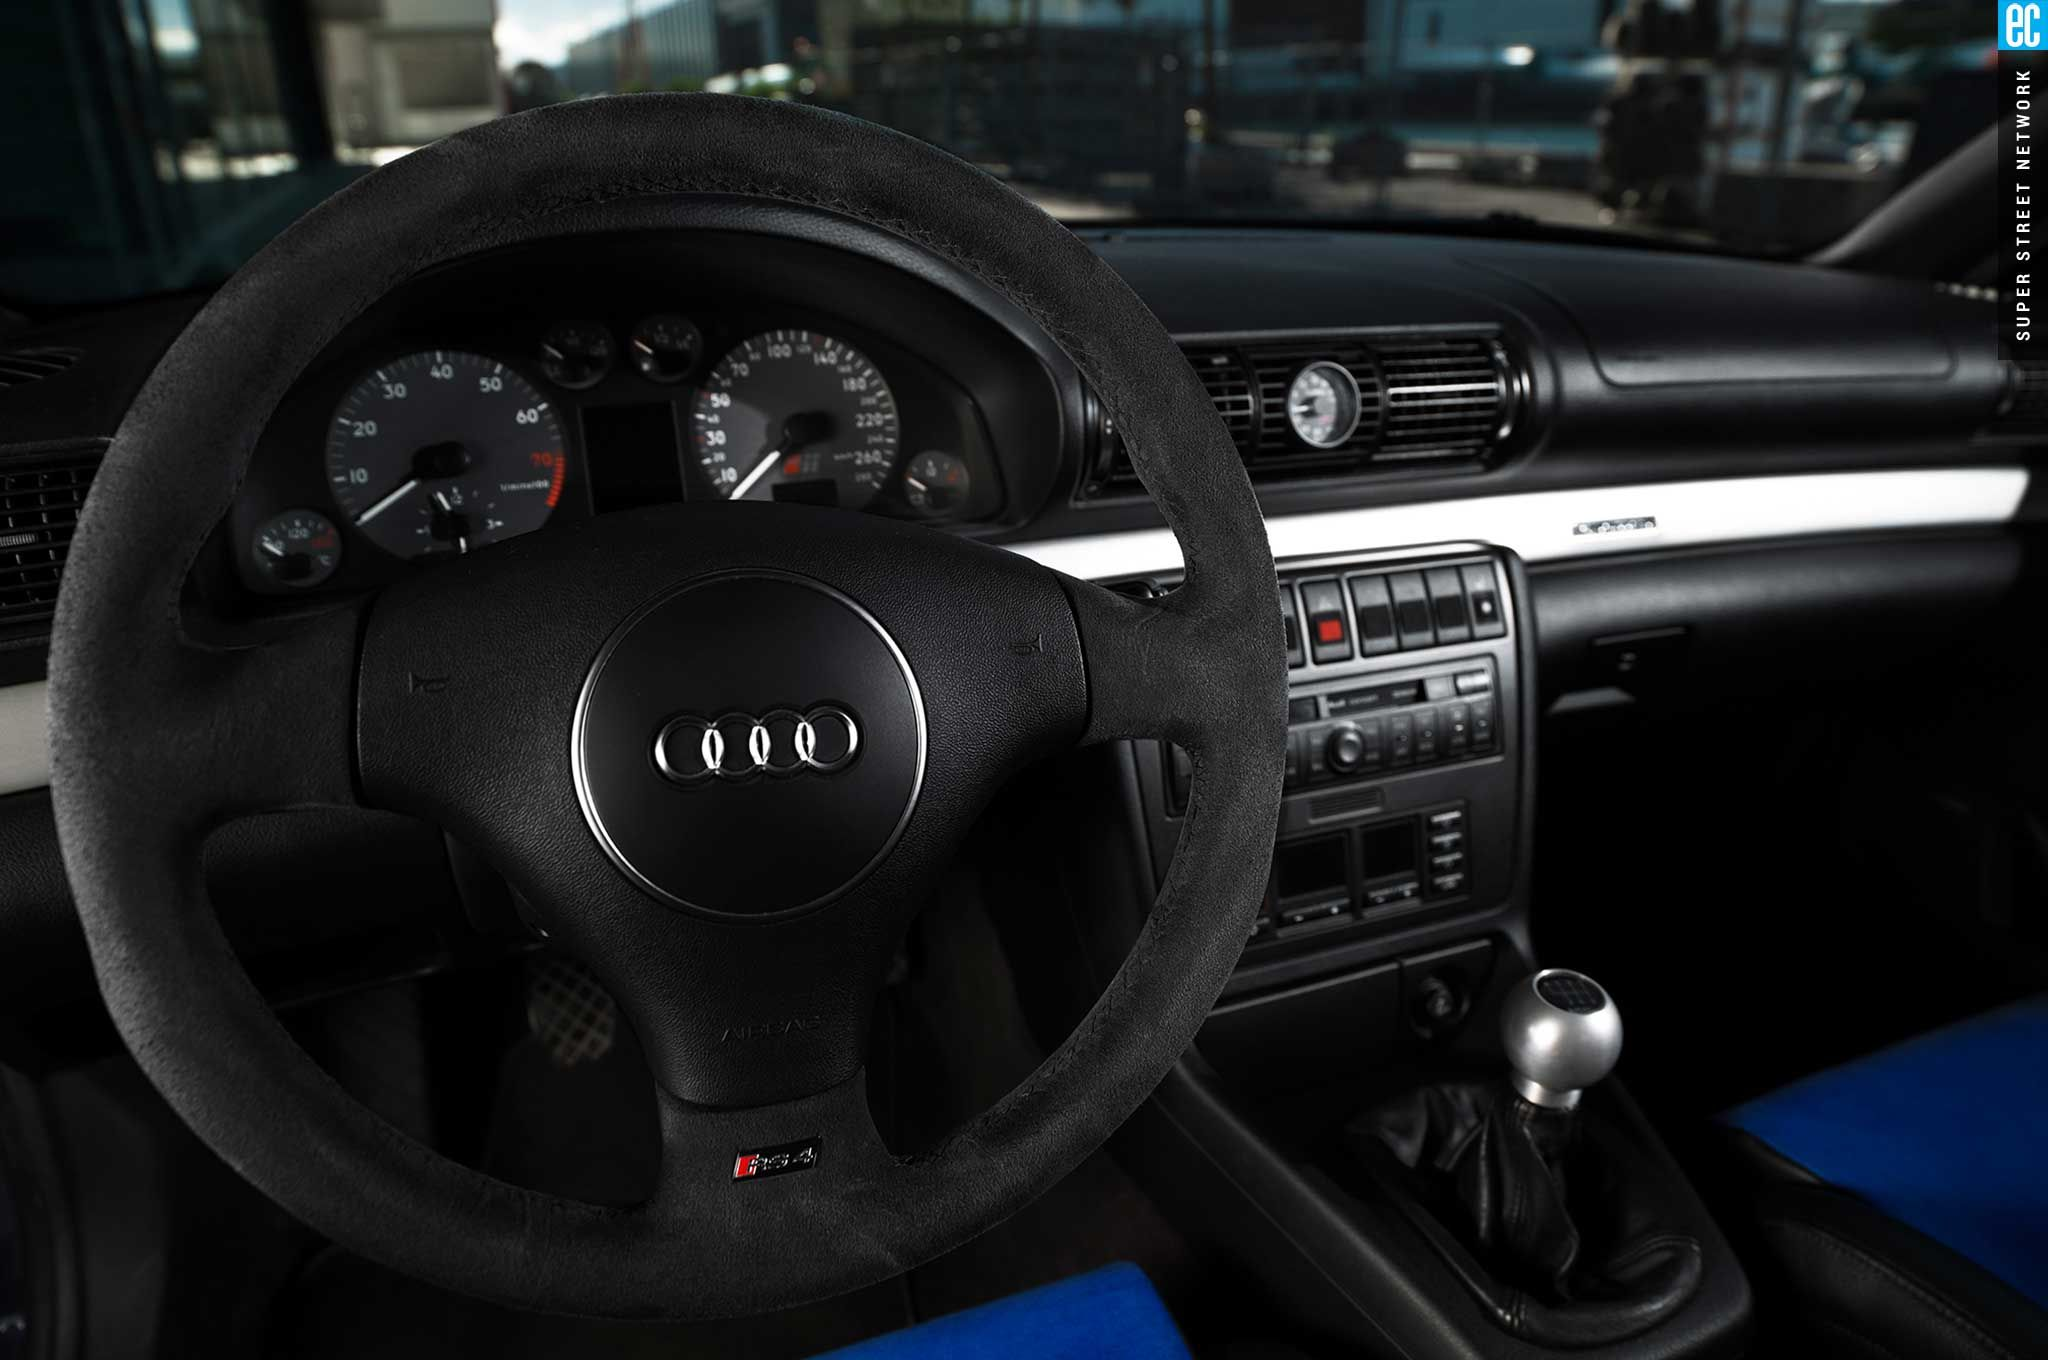 audi-rs4-b5-sedan-rs4-steering-wheel.jpg